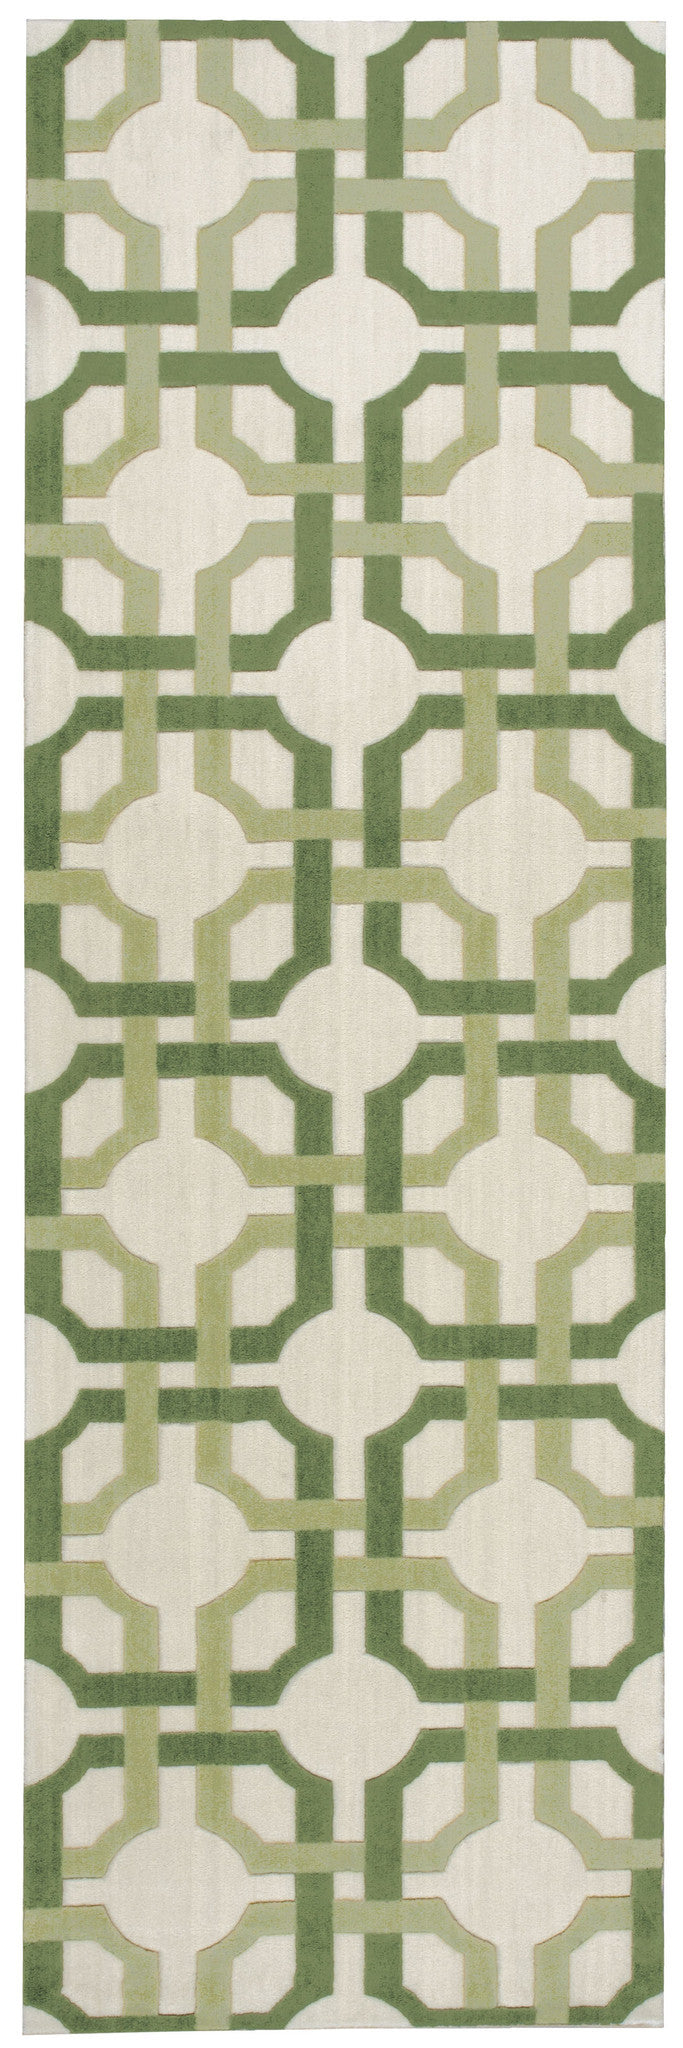 Waverly Artisanal Delight Groovy Grille Leaf Area Rug By Nourison WAD09 LEAF